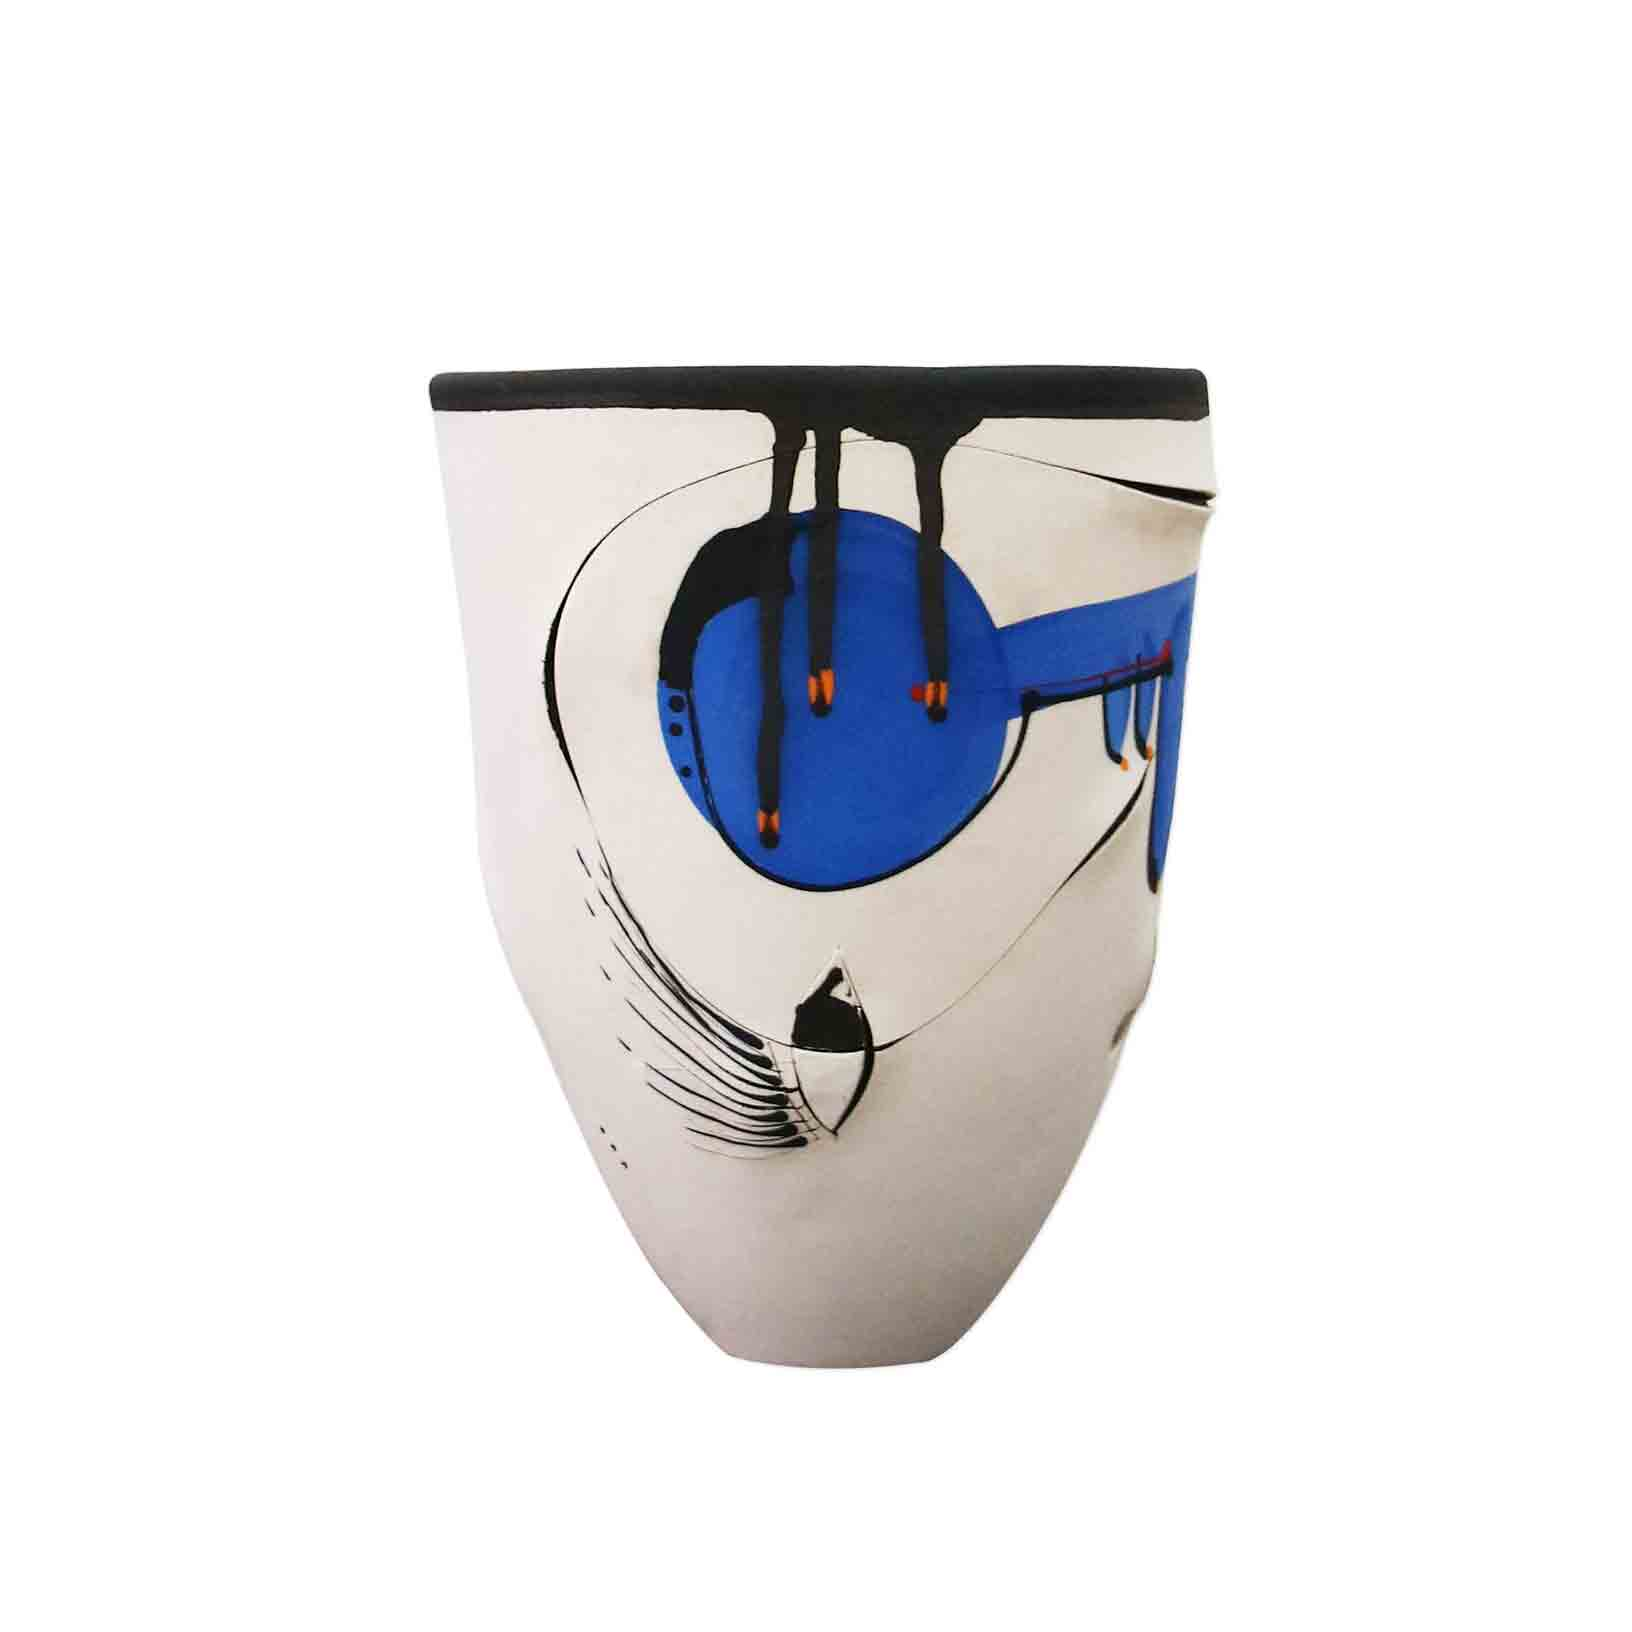 Imiso Ceramics | Africasso Collection| 2020| Eclectica Contemporary | Gallery | Cape Town |